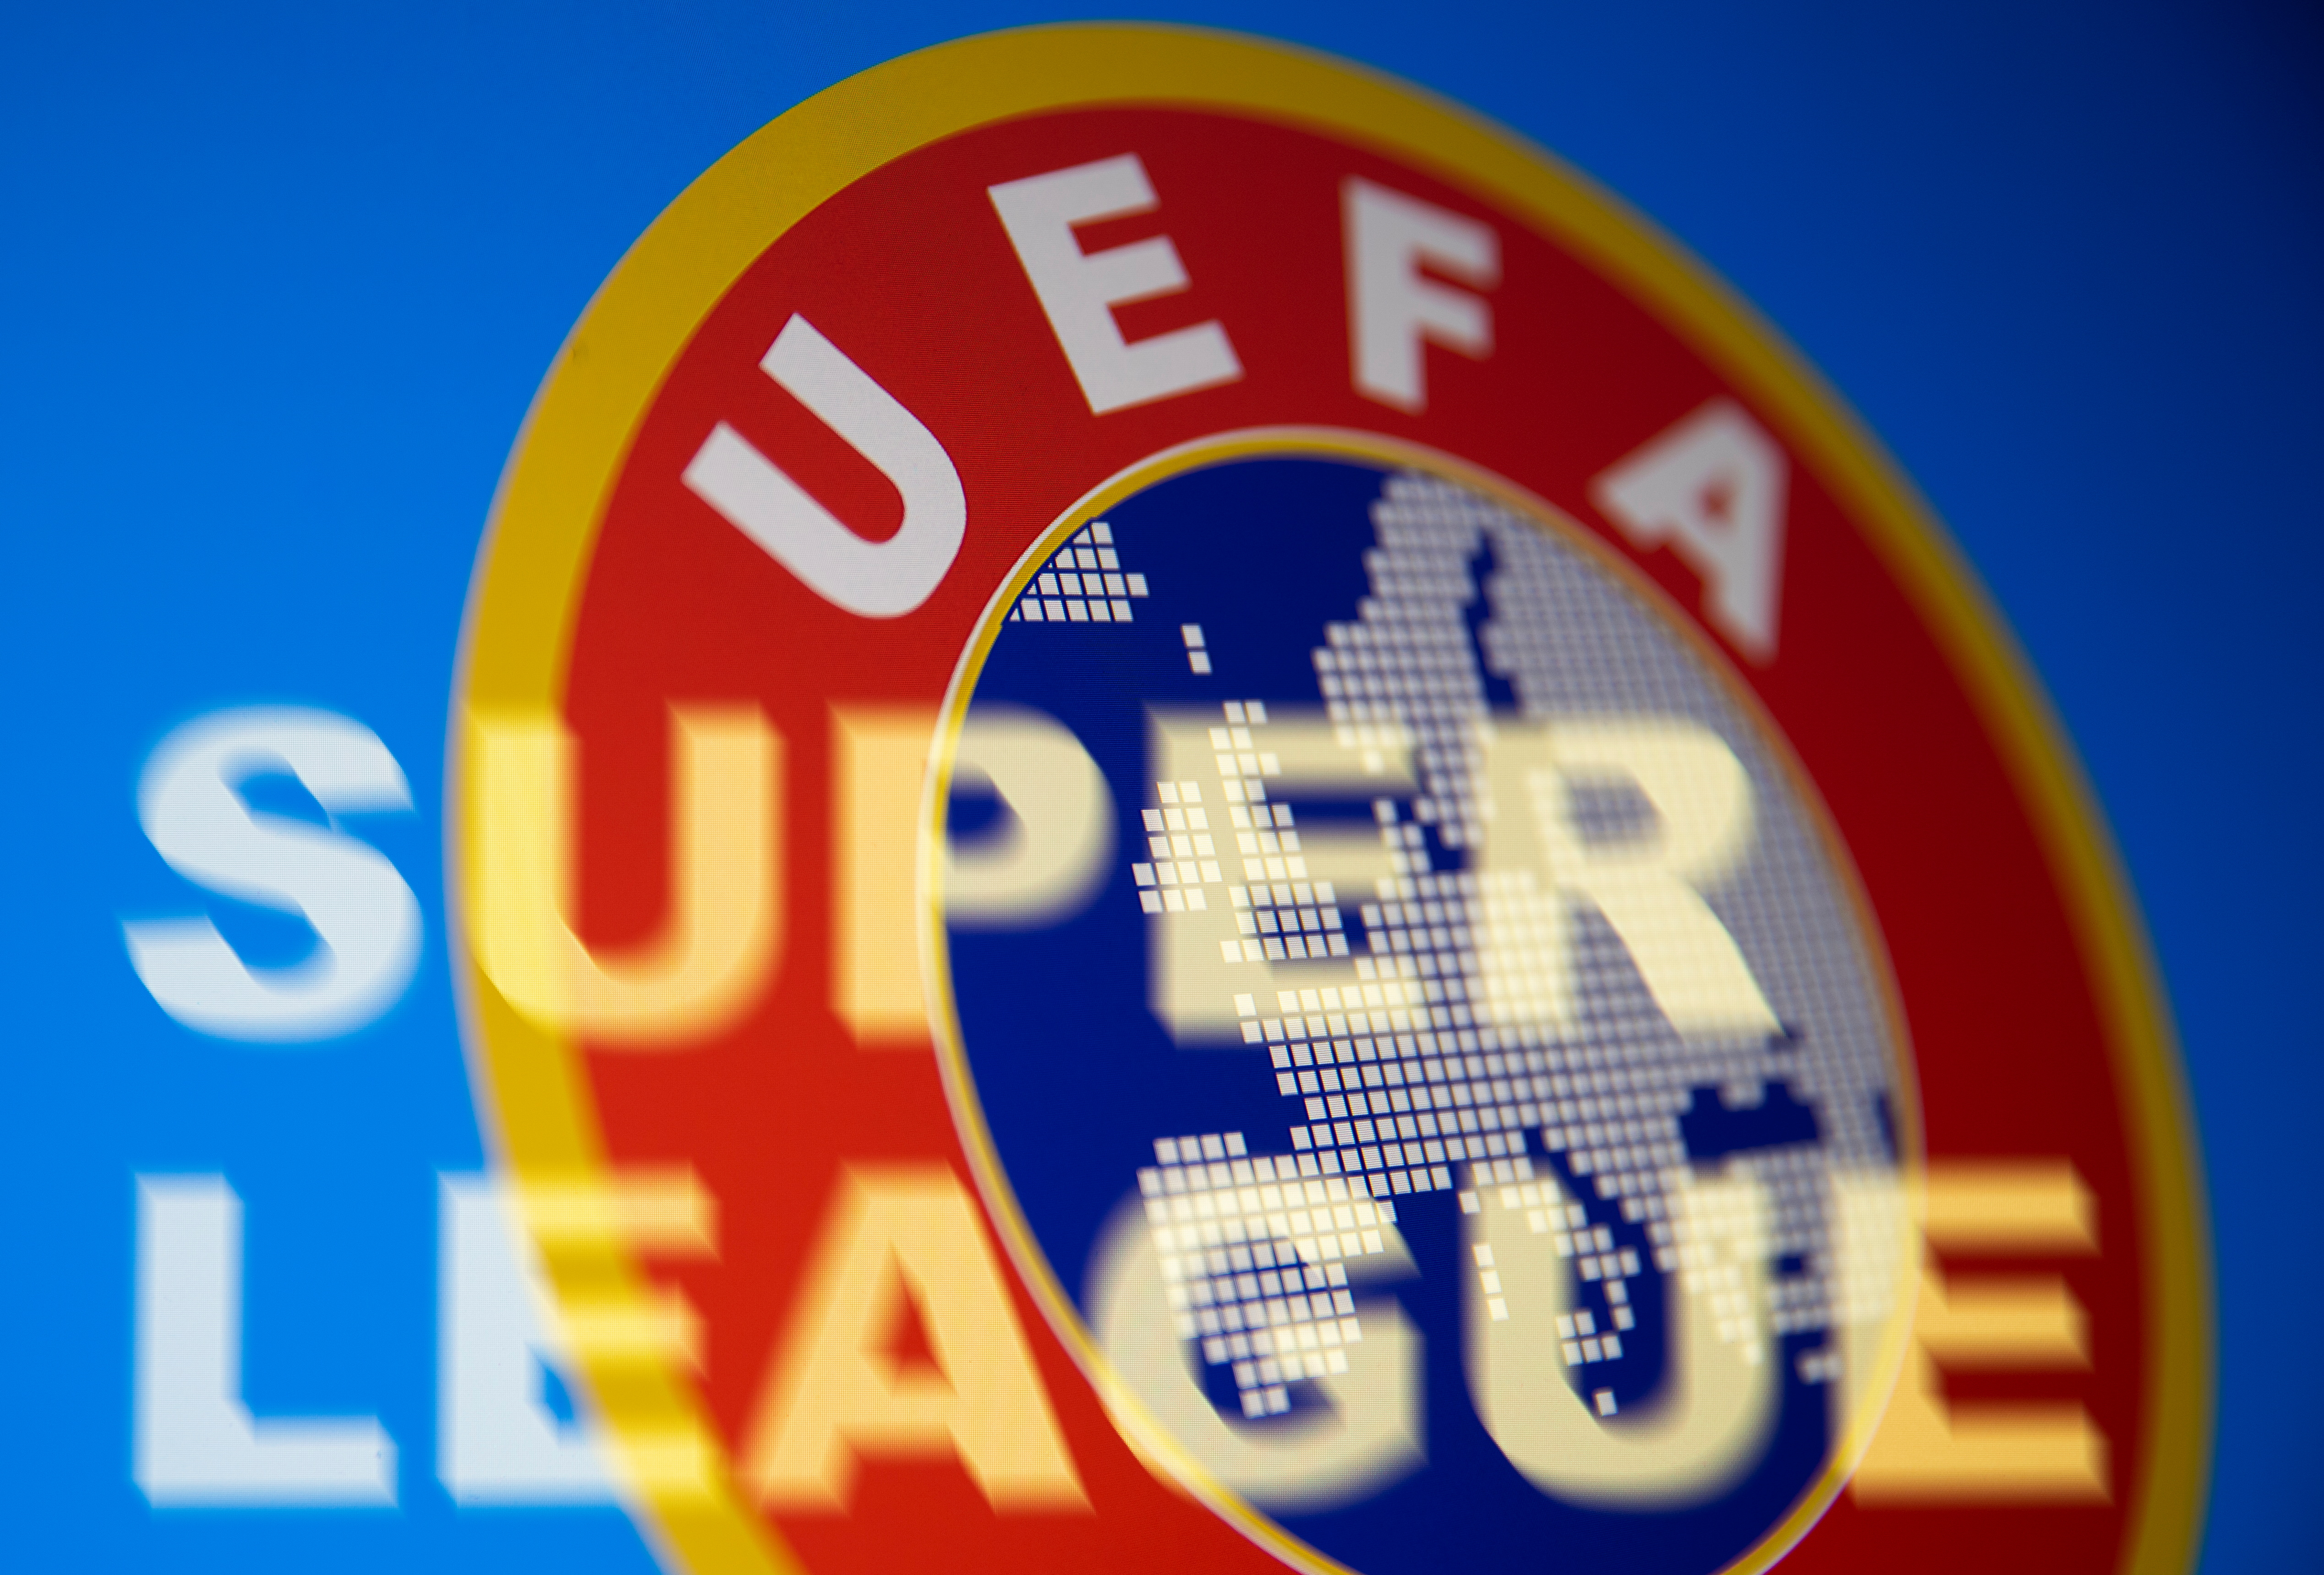 Super League words are seen in front of UEFA logo in this illustration taken April 19, 2021. REUTERS/Dado Ruvic/Illustration